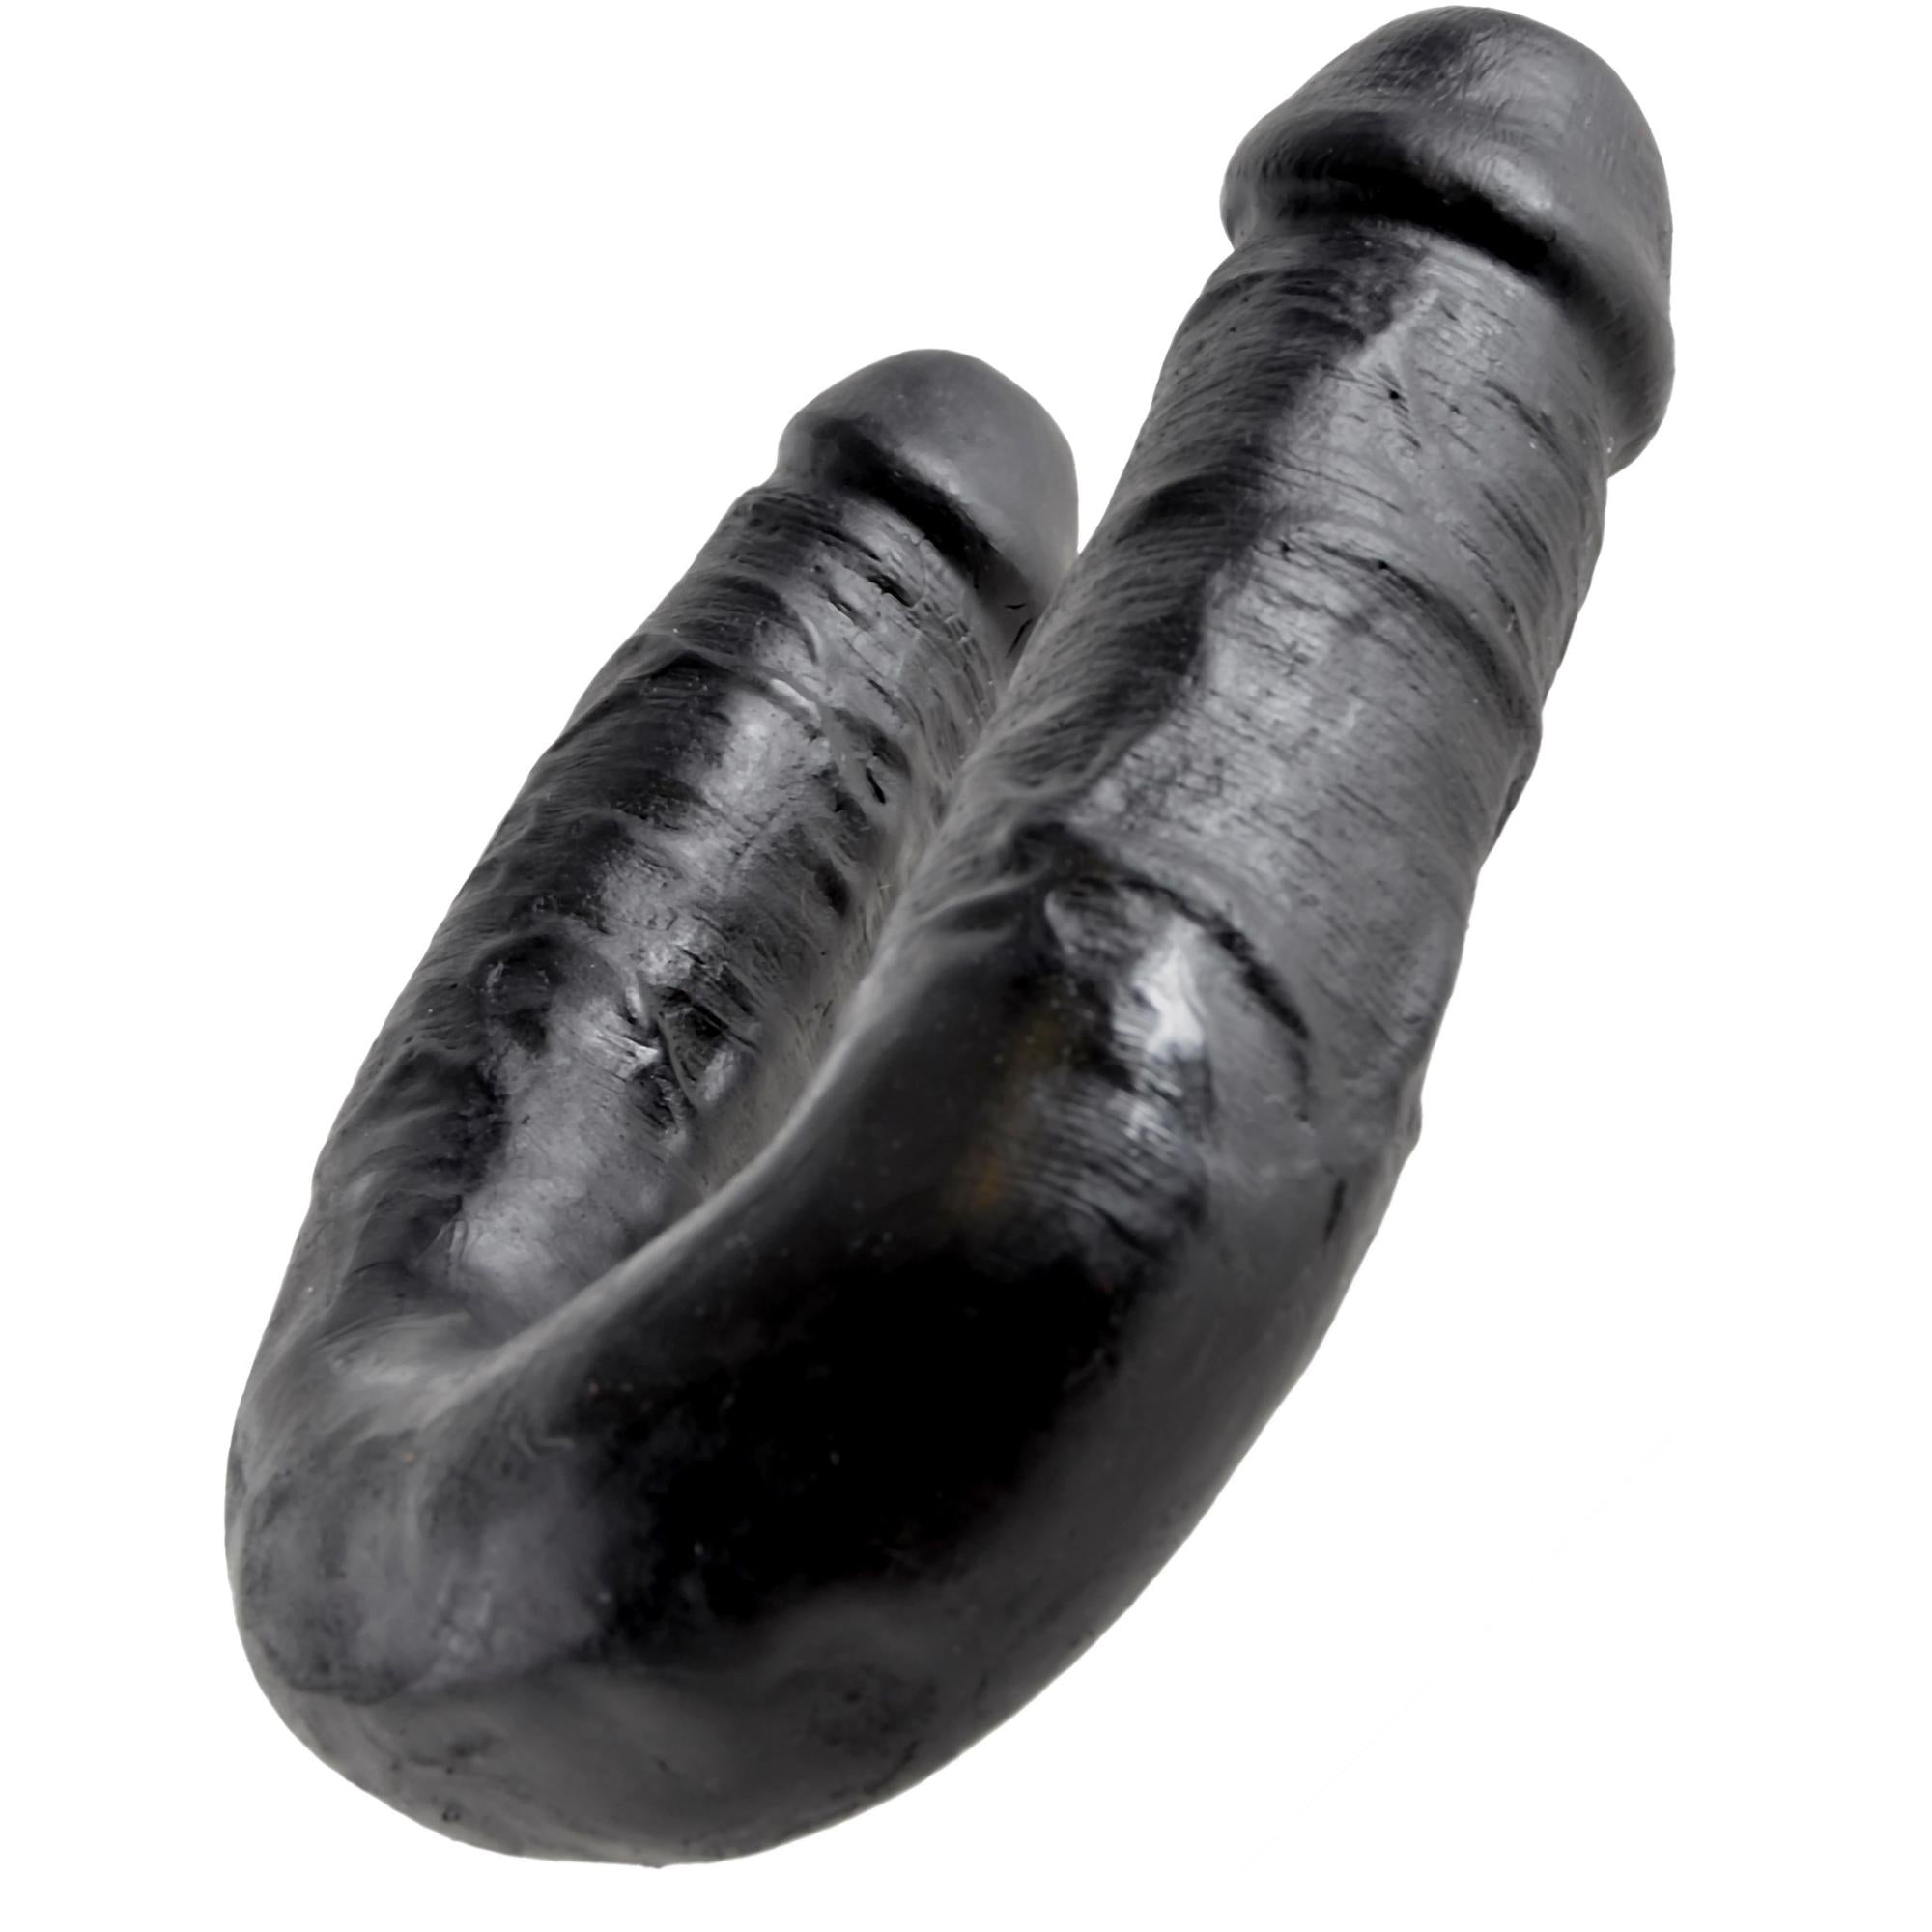 King Cock Medium Double Trouble - Double Ended Dildo - Gay Men's Sex Toys - Adam's Toy Box